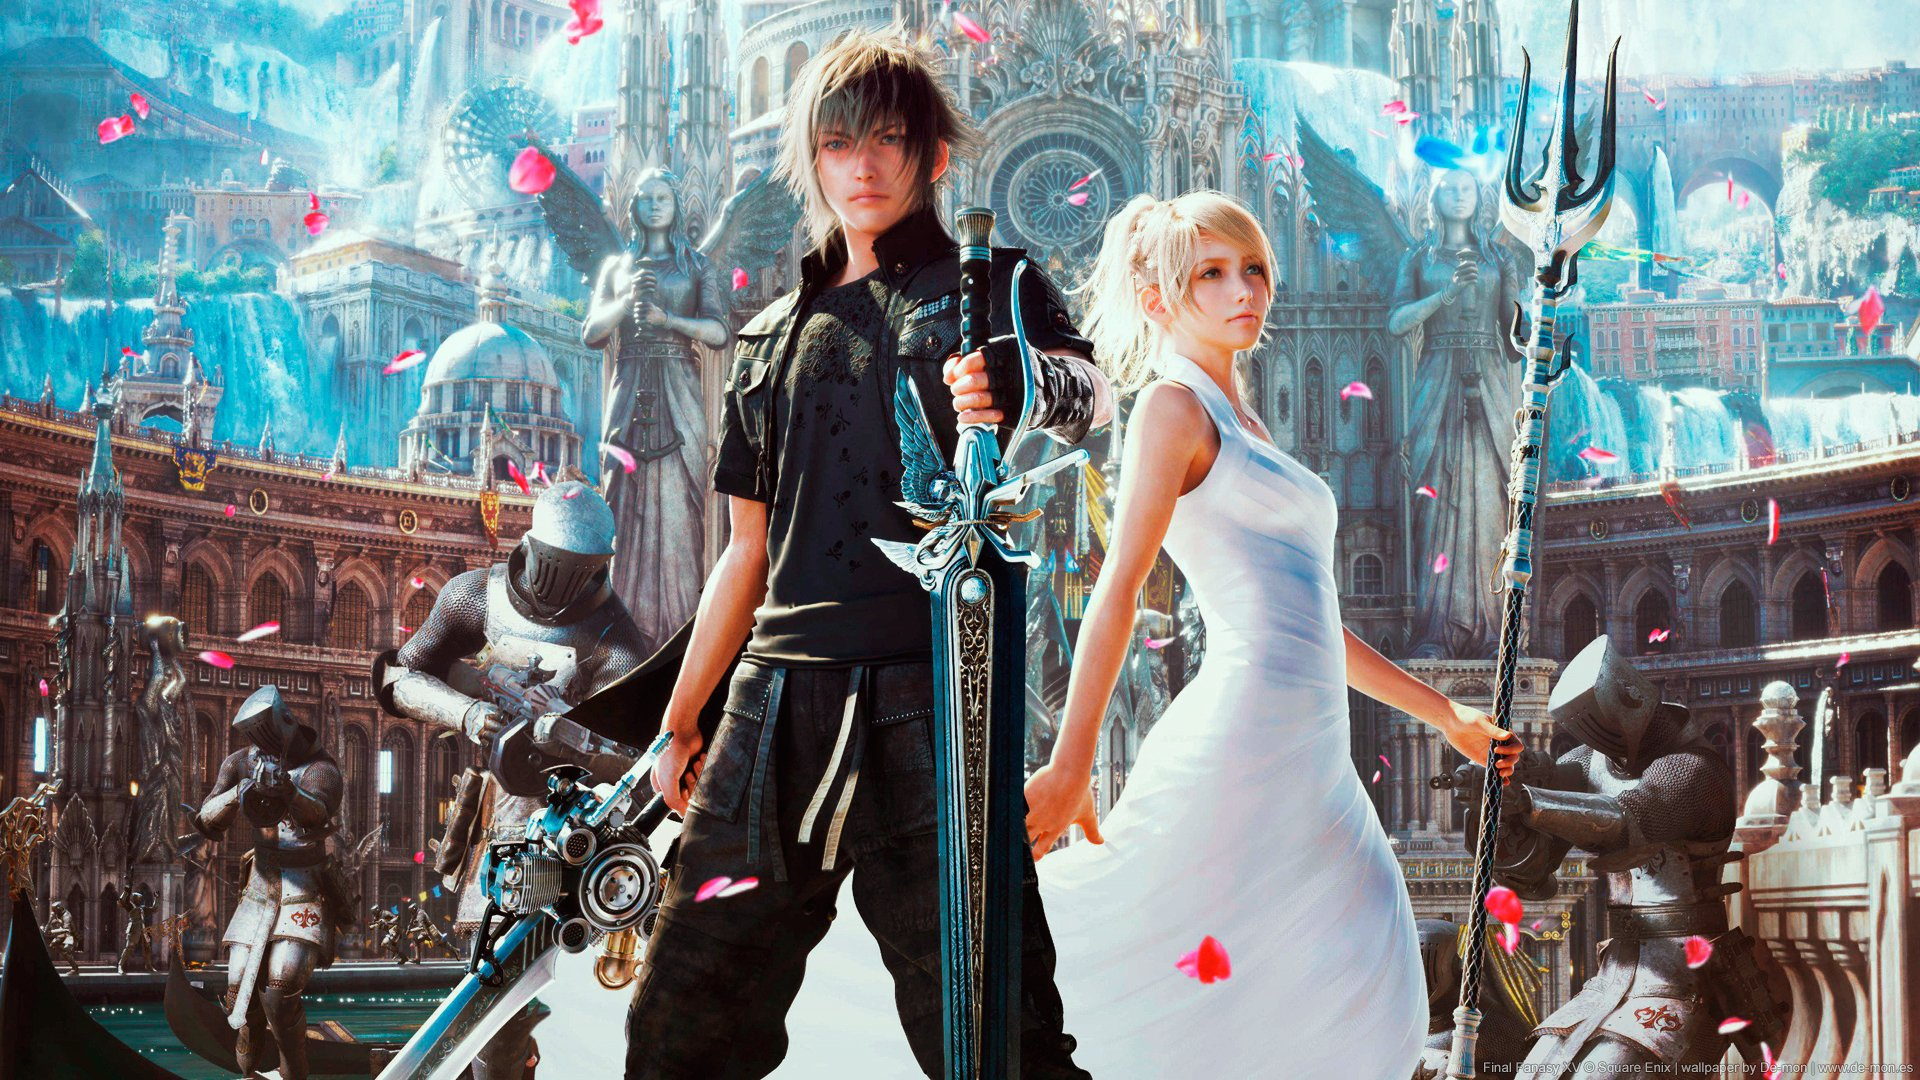 final fantasy xv hd wallpaper | hintergrund | 1920x1080 | id:834171